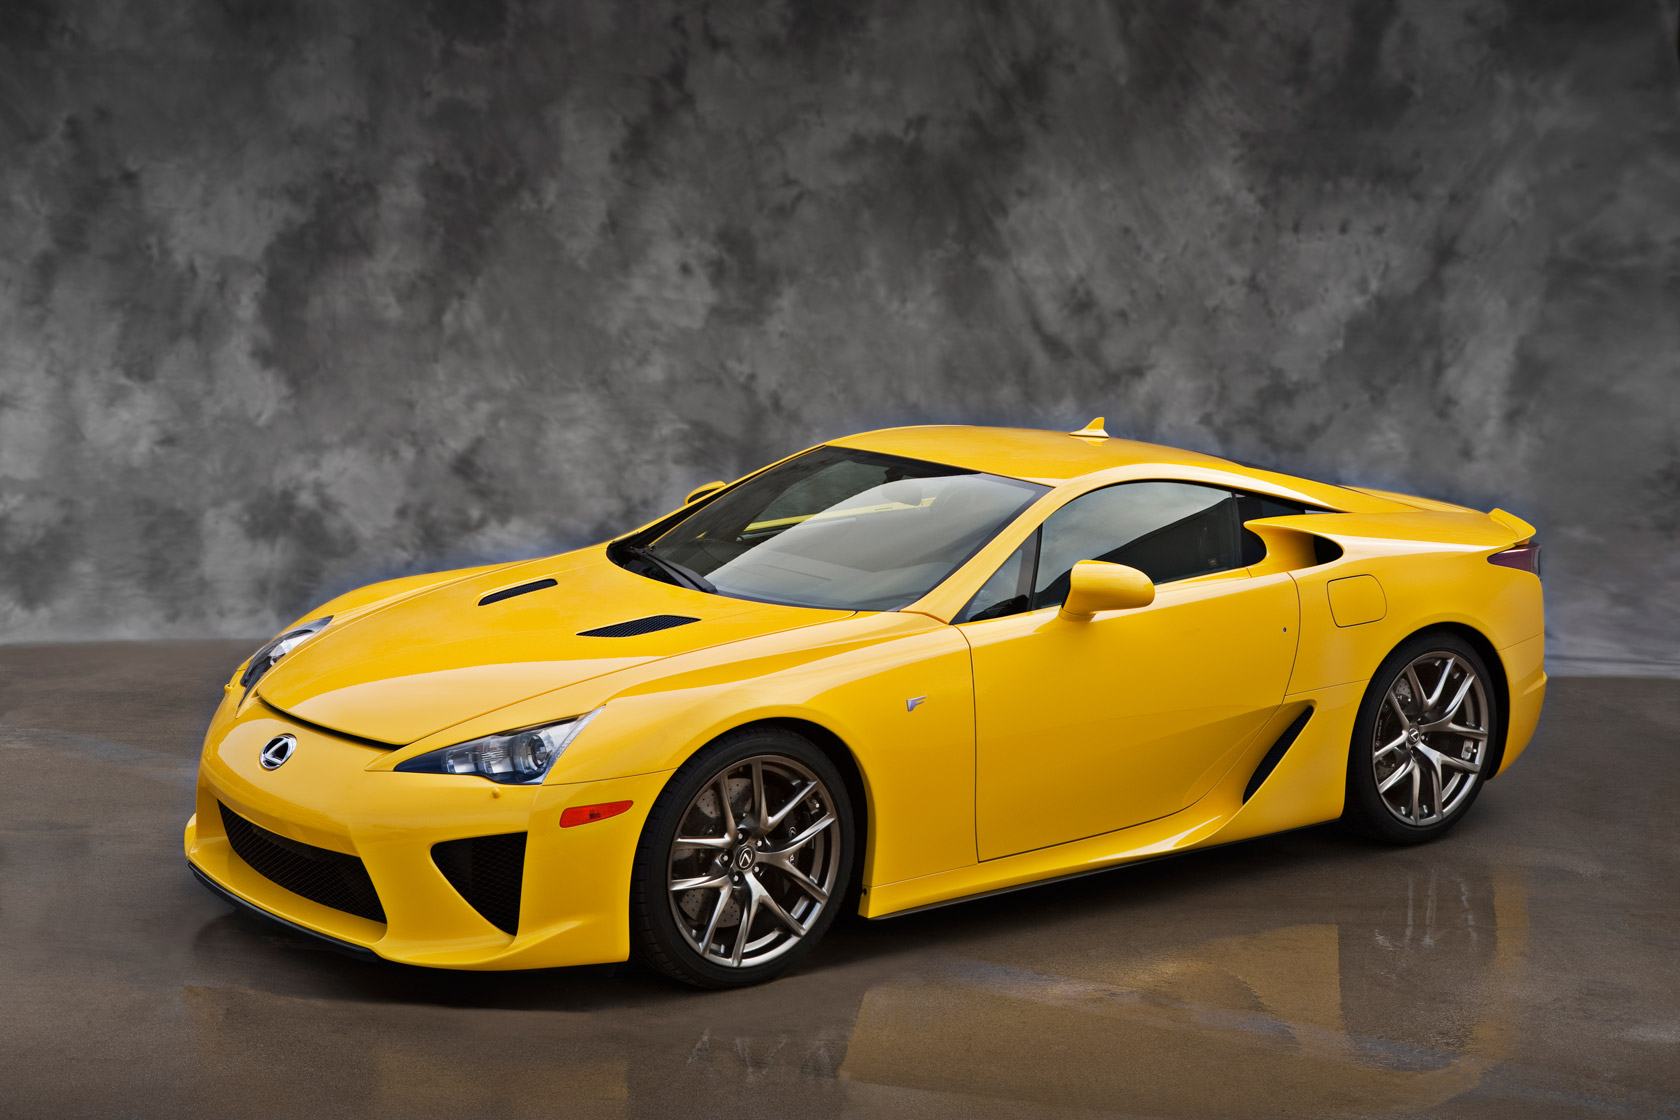 Charming Official Yellow Lexus Lfa Photos Lexus Enthusiast